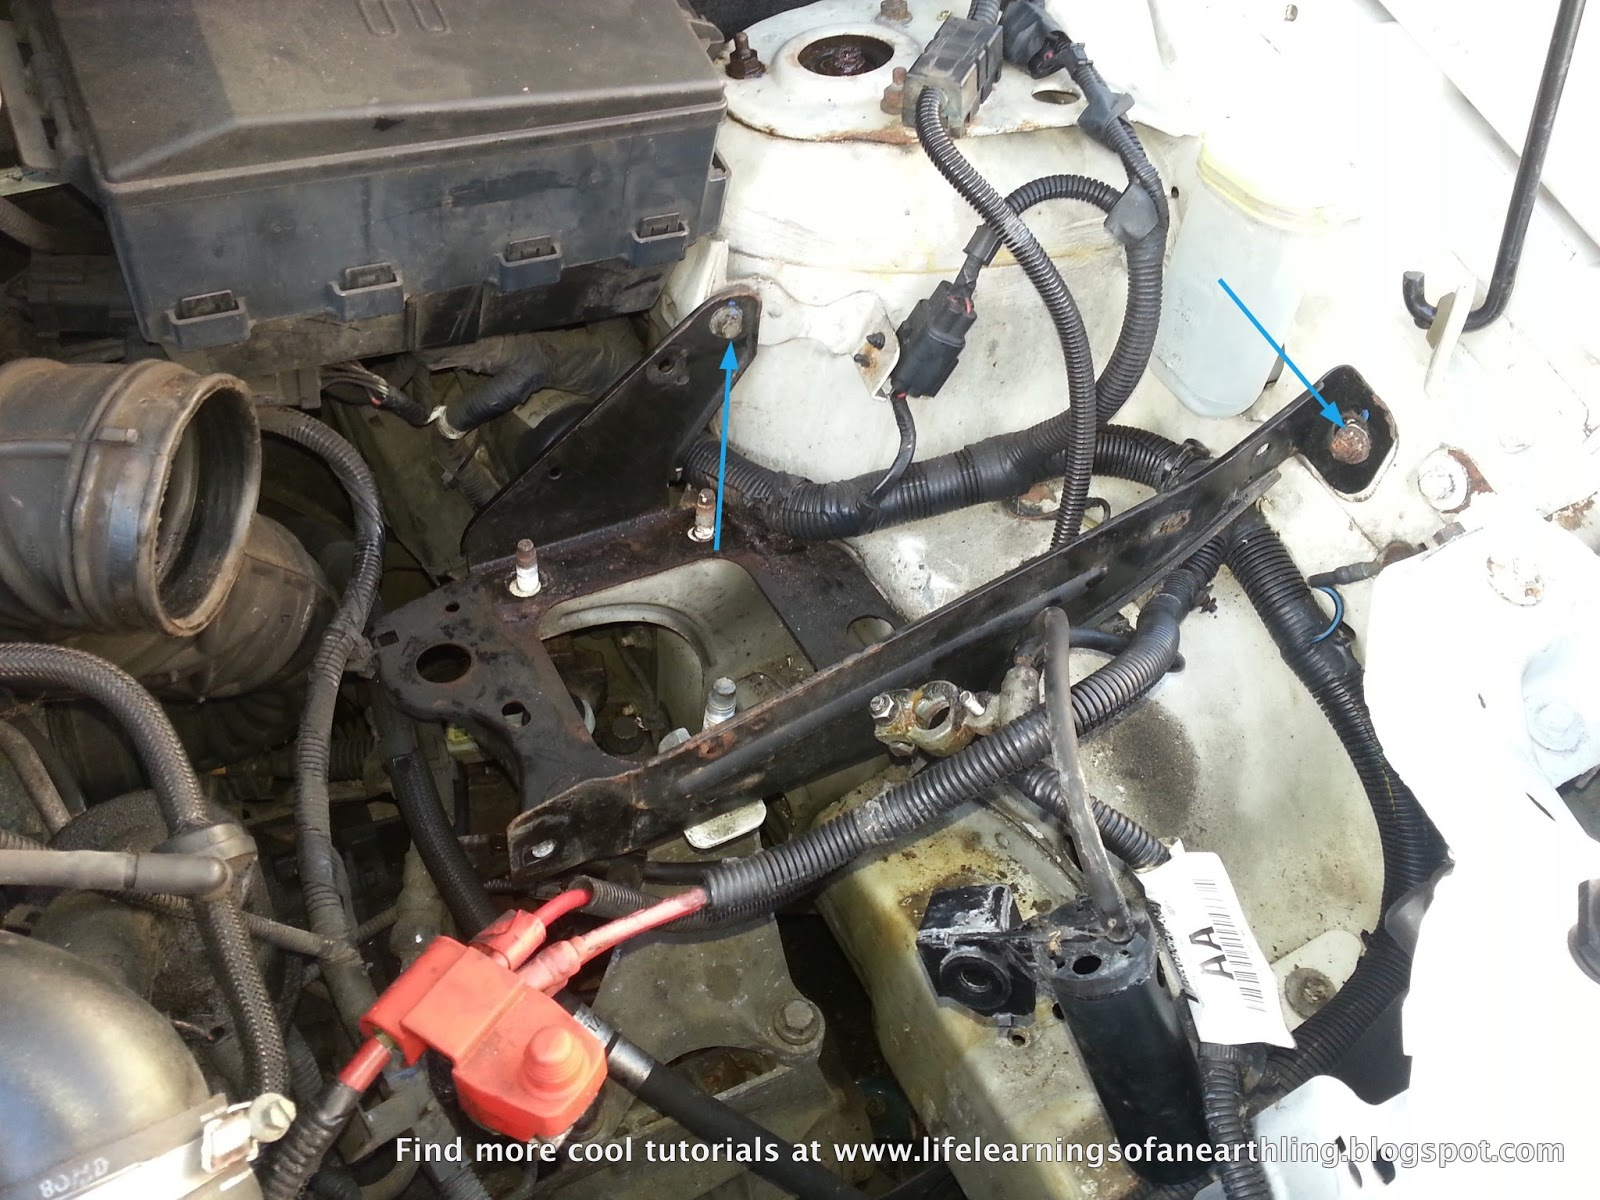 Life Learnings Of An Earthling: How to repair Gear Selector